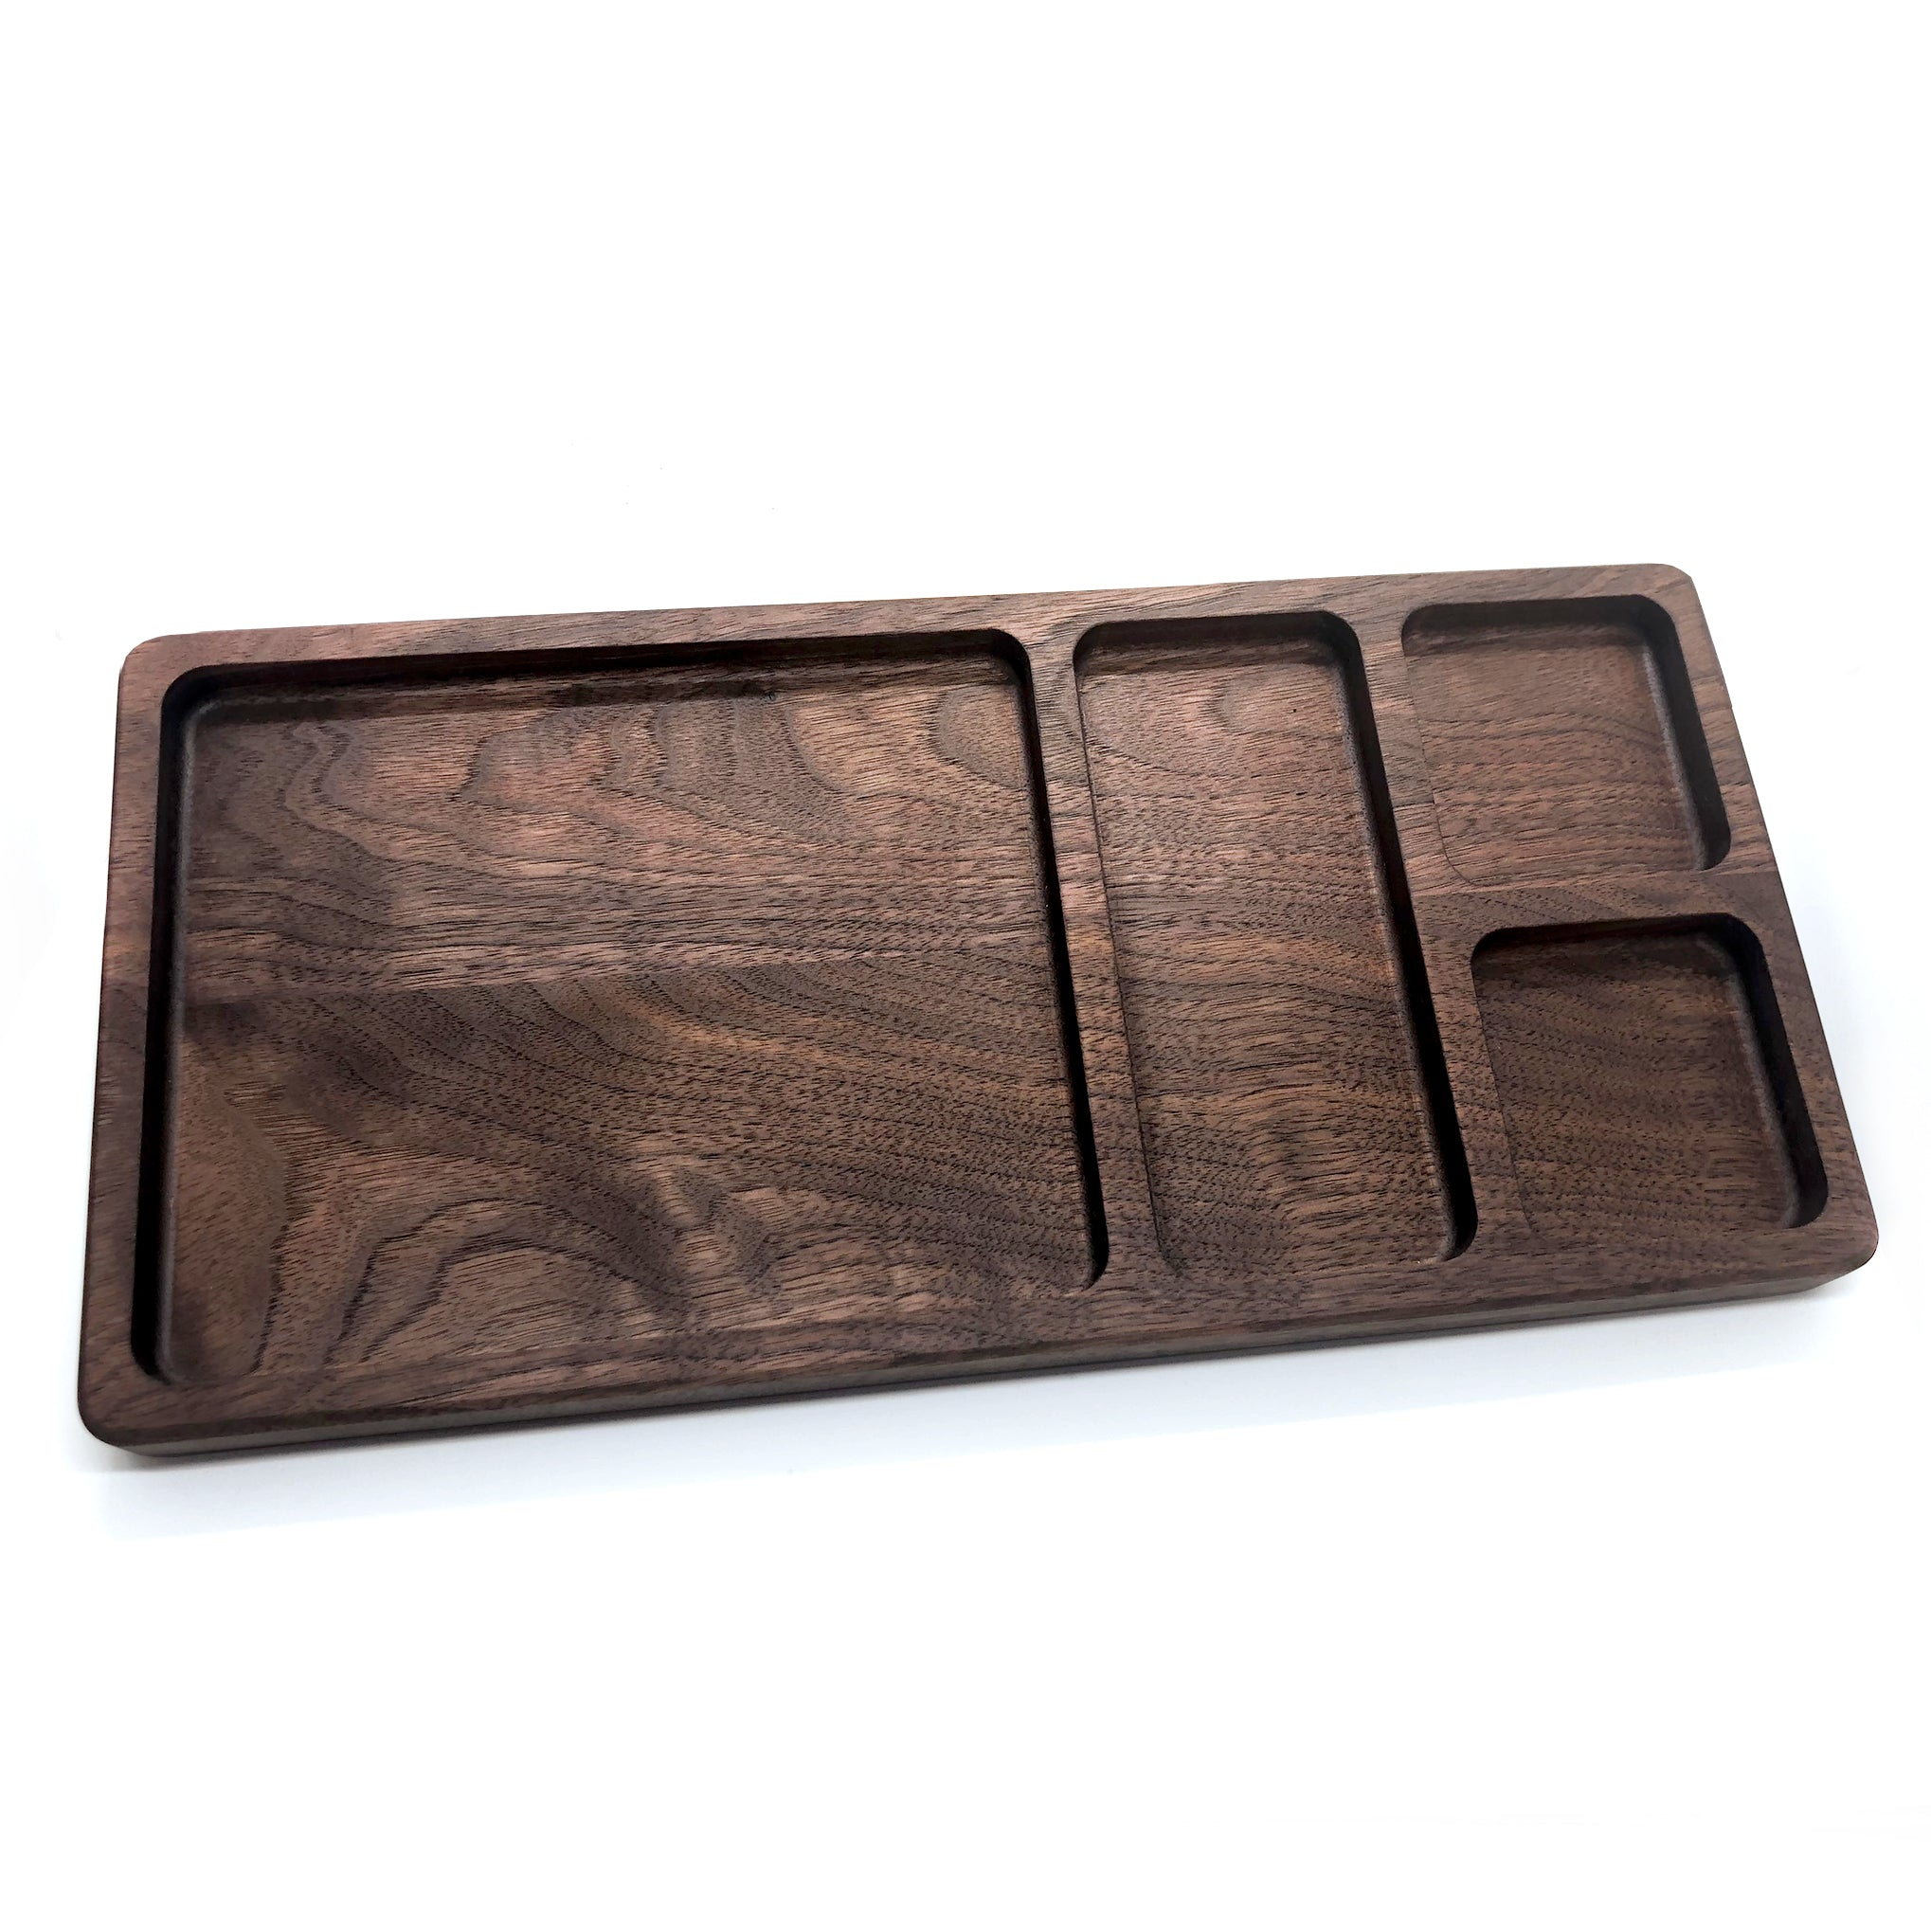 EDC Wooden Valet Tray [Black Walnut]